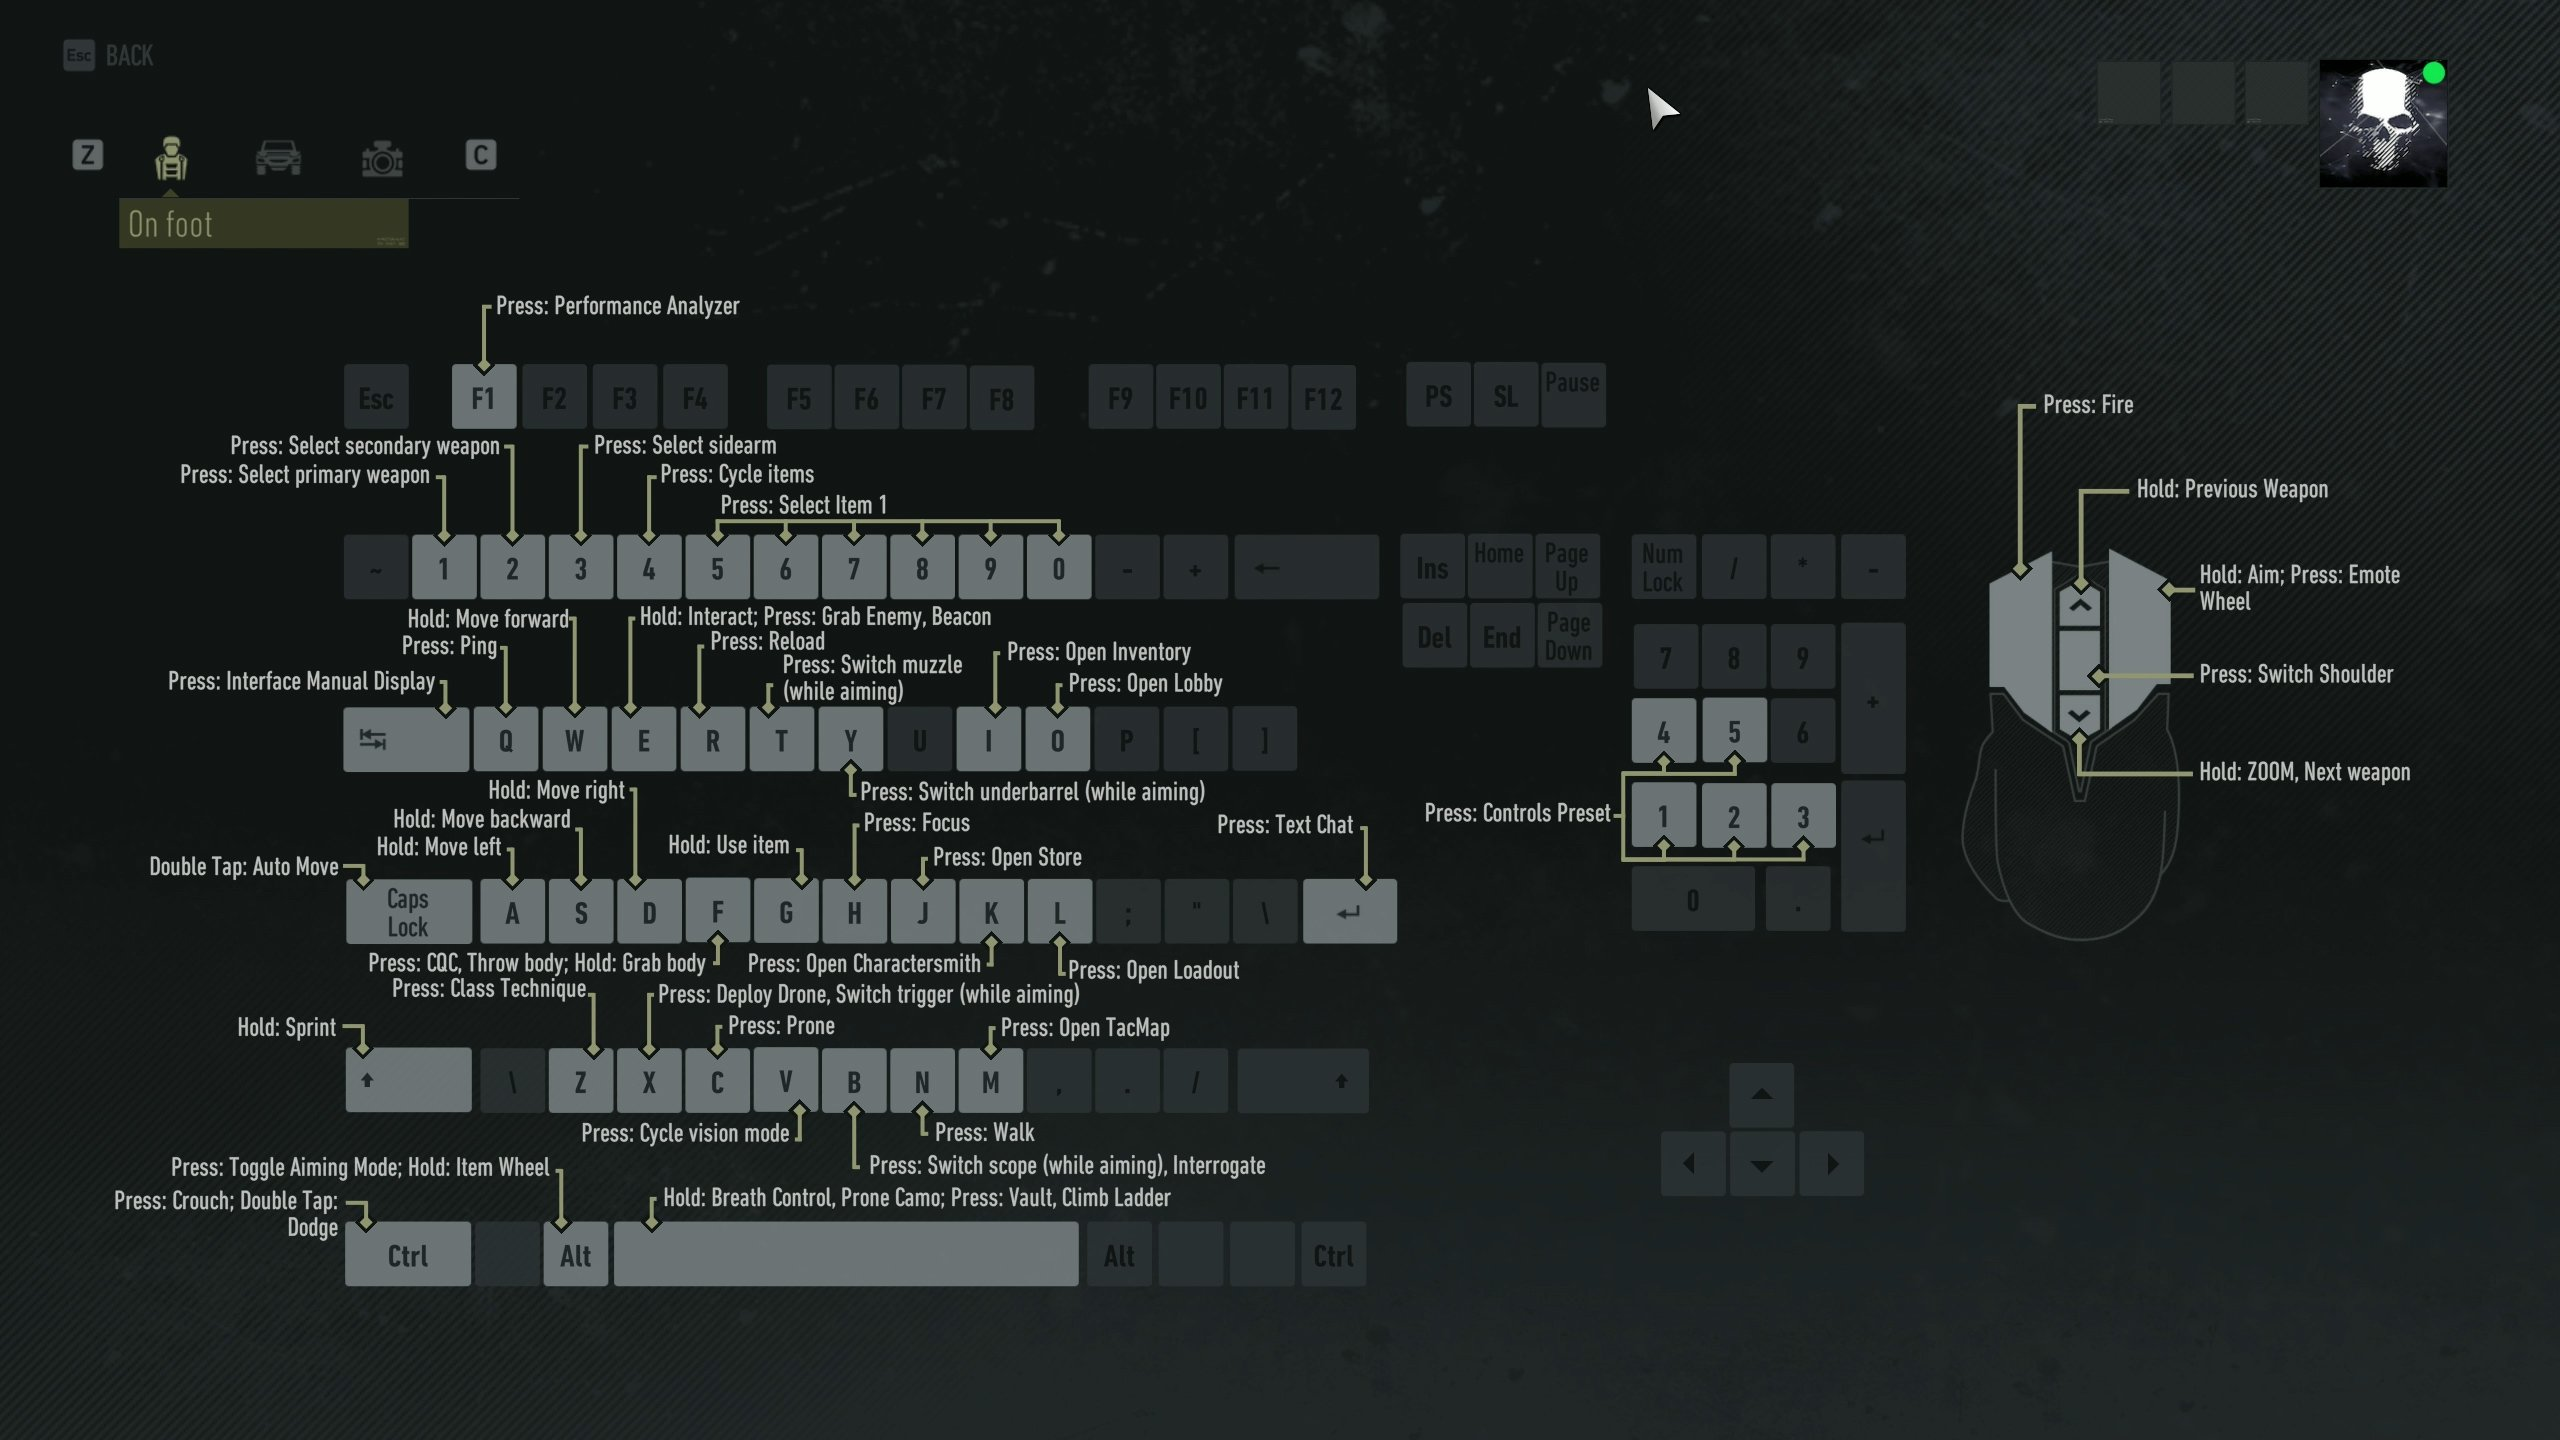 Ghost Recon Breakpoint - PC Keybindings